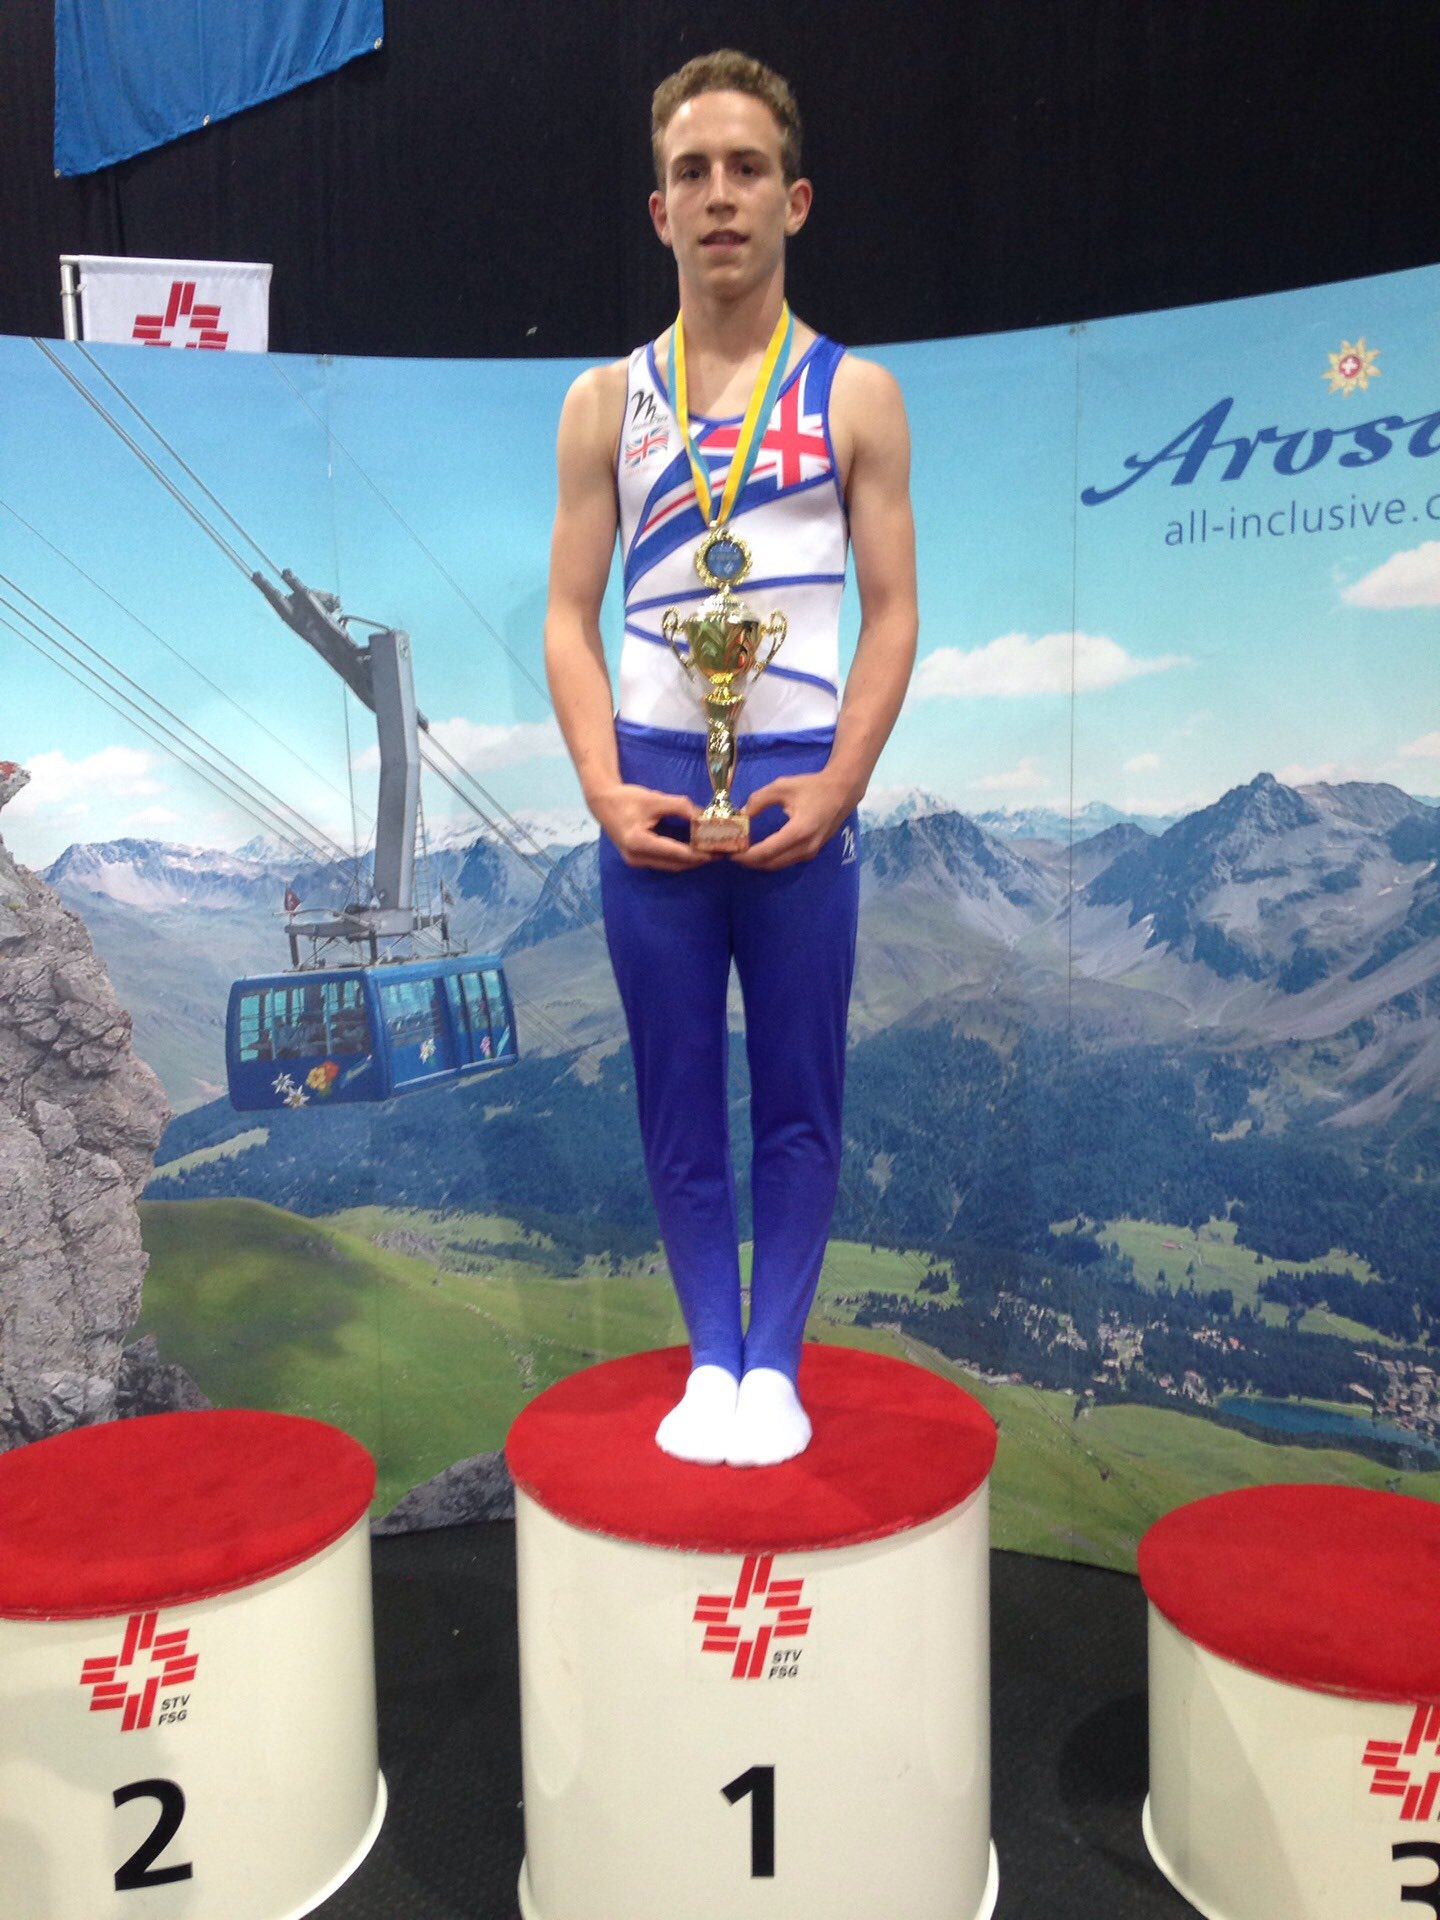 RT @NorthamptonTGA: GOLD for @stamp_andrew at the Nissen Cup 🇬🇧👍🇬🇧 #greatWork #Arosa #Switzerland https://t.co/RrVoIuHwEU